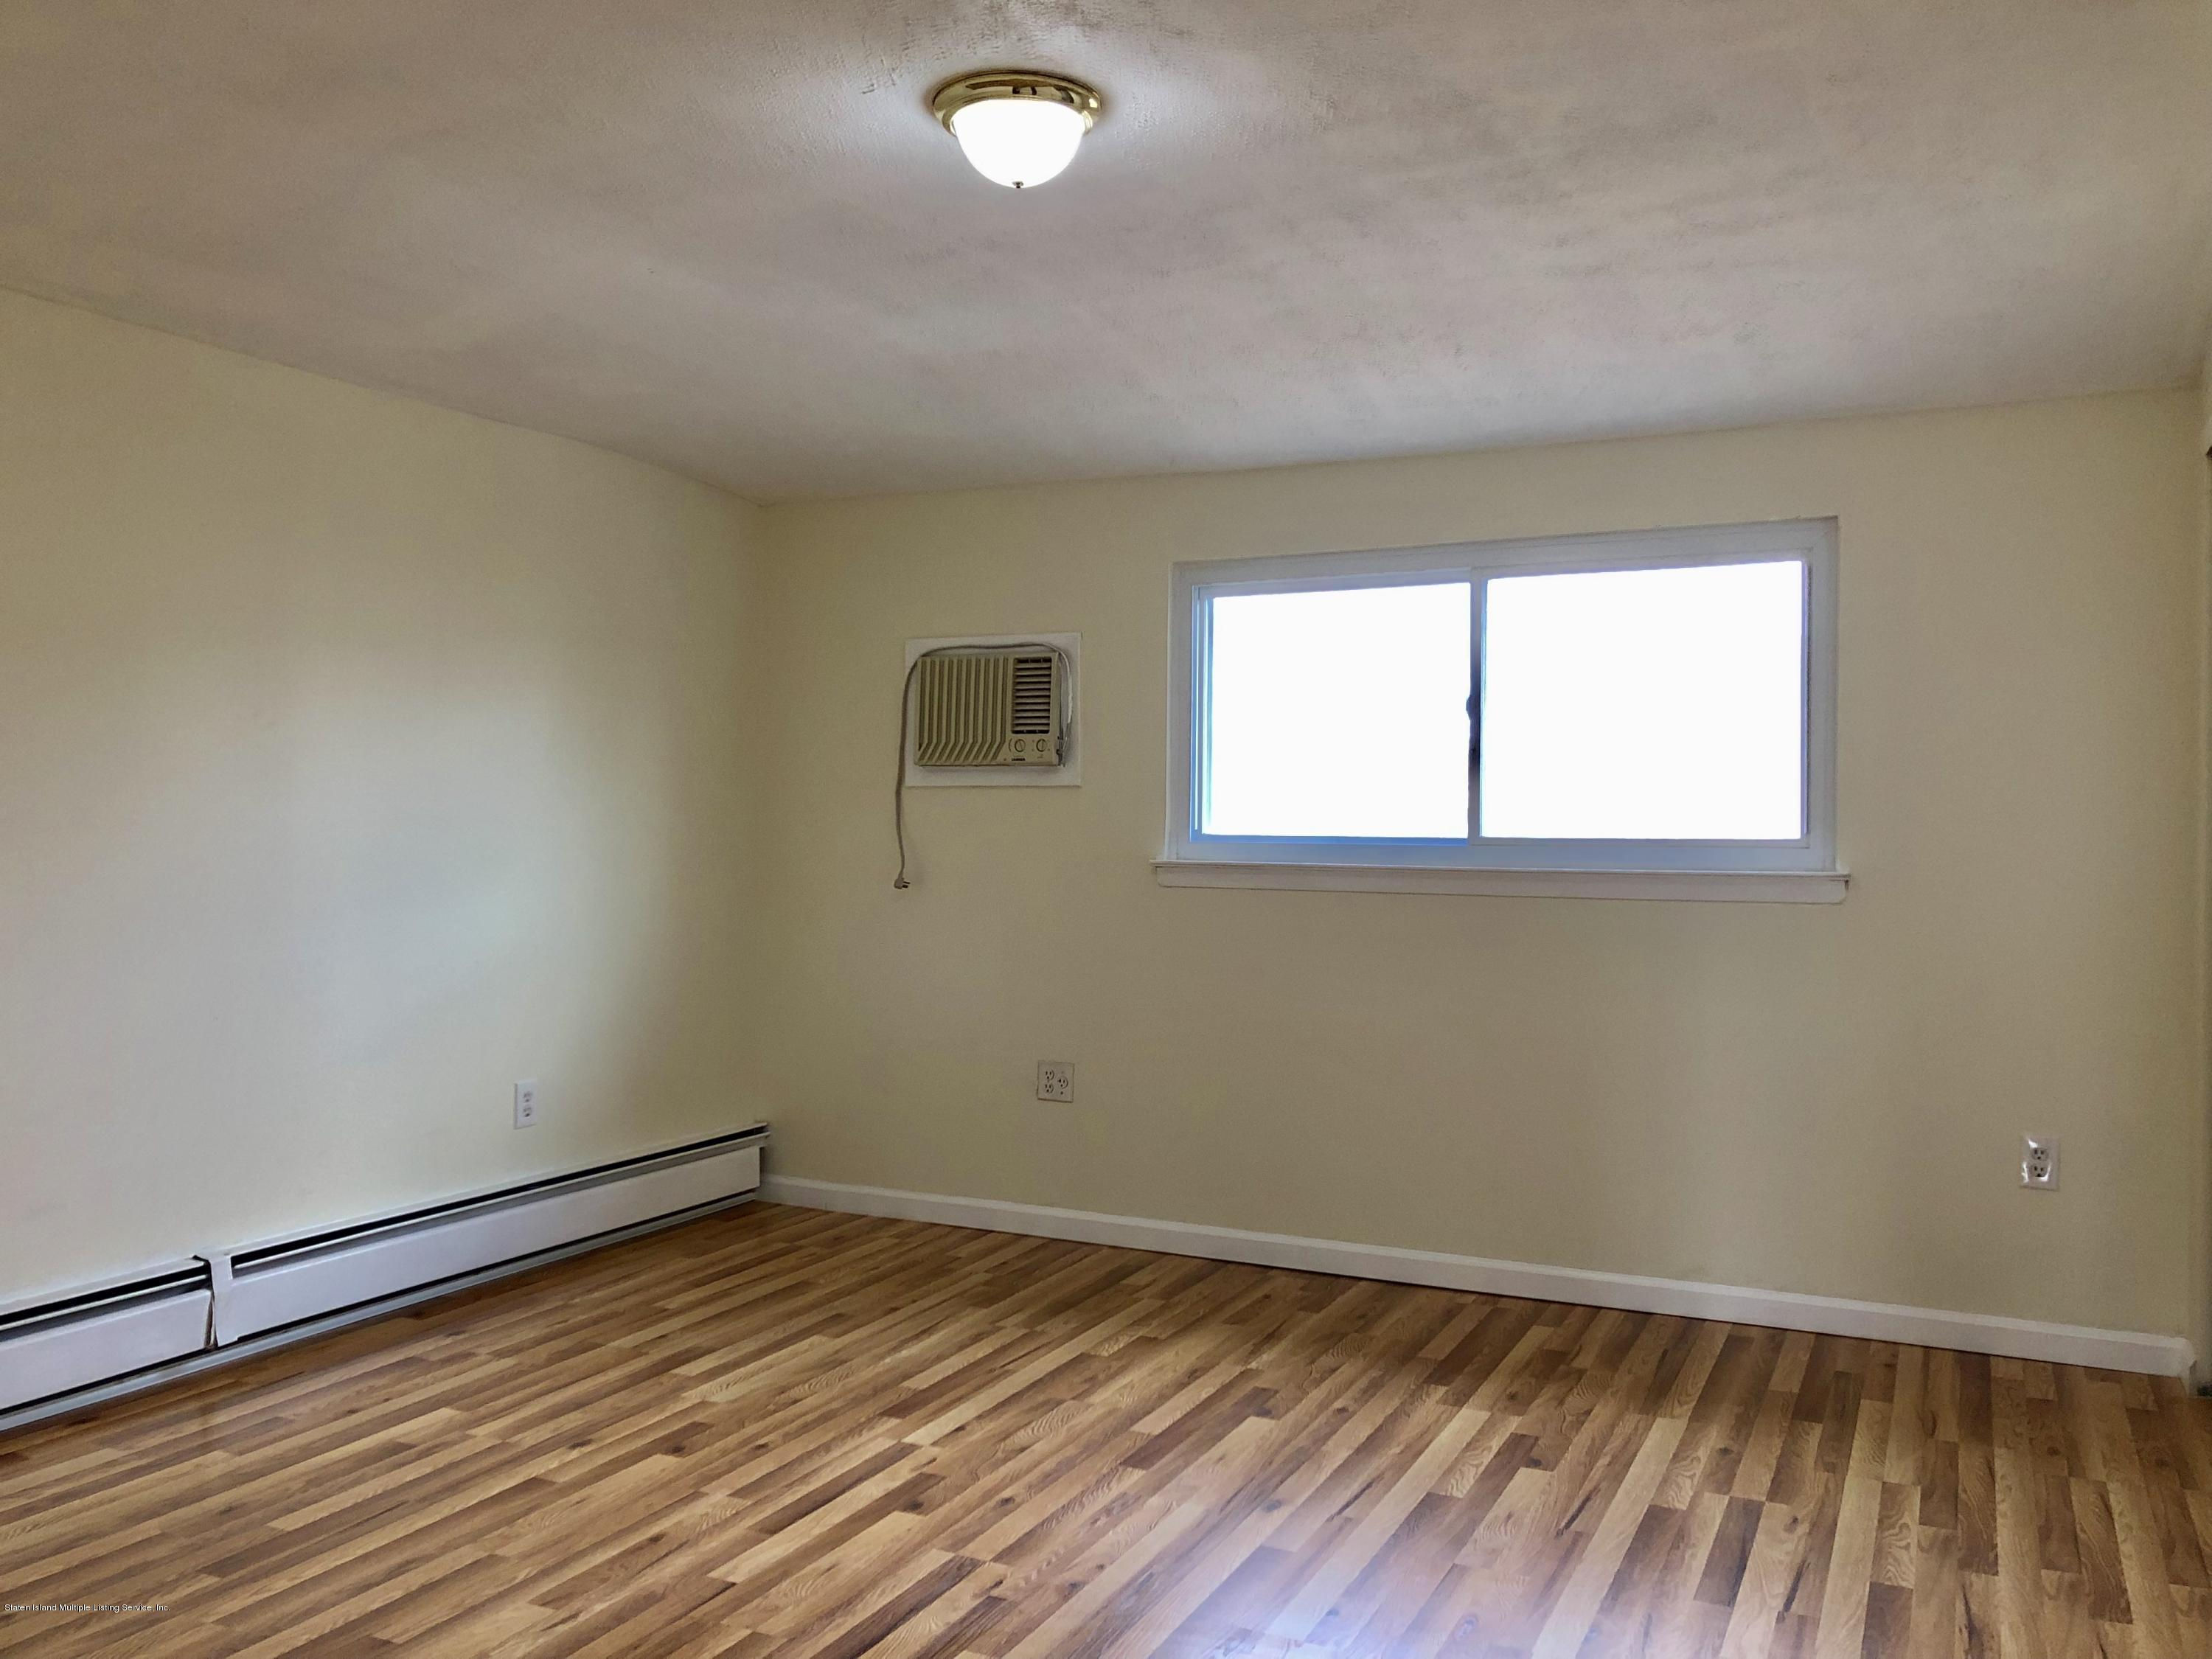 Single Family - Semi-Attached 205 Mcveigh Avenue  Staten Island, NY 10314, MLS-1123847-16